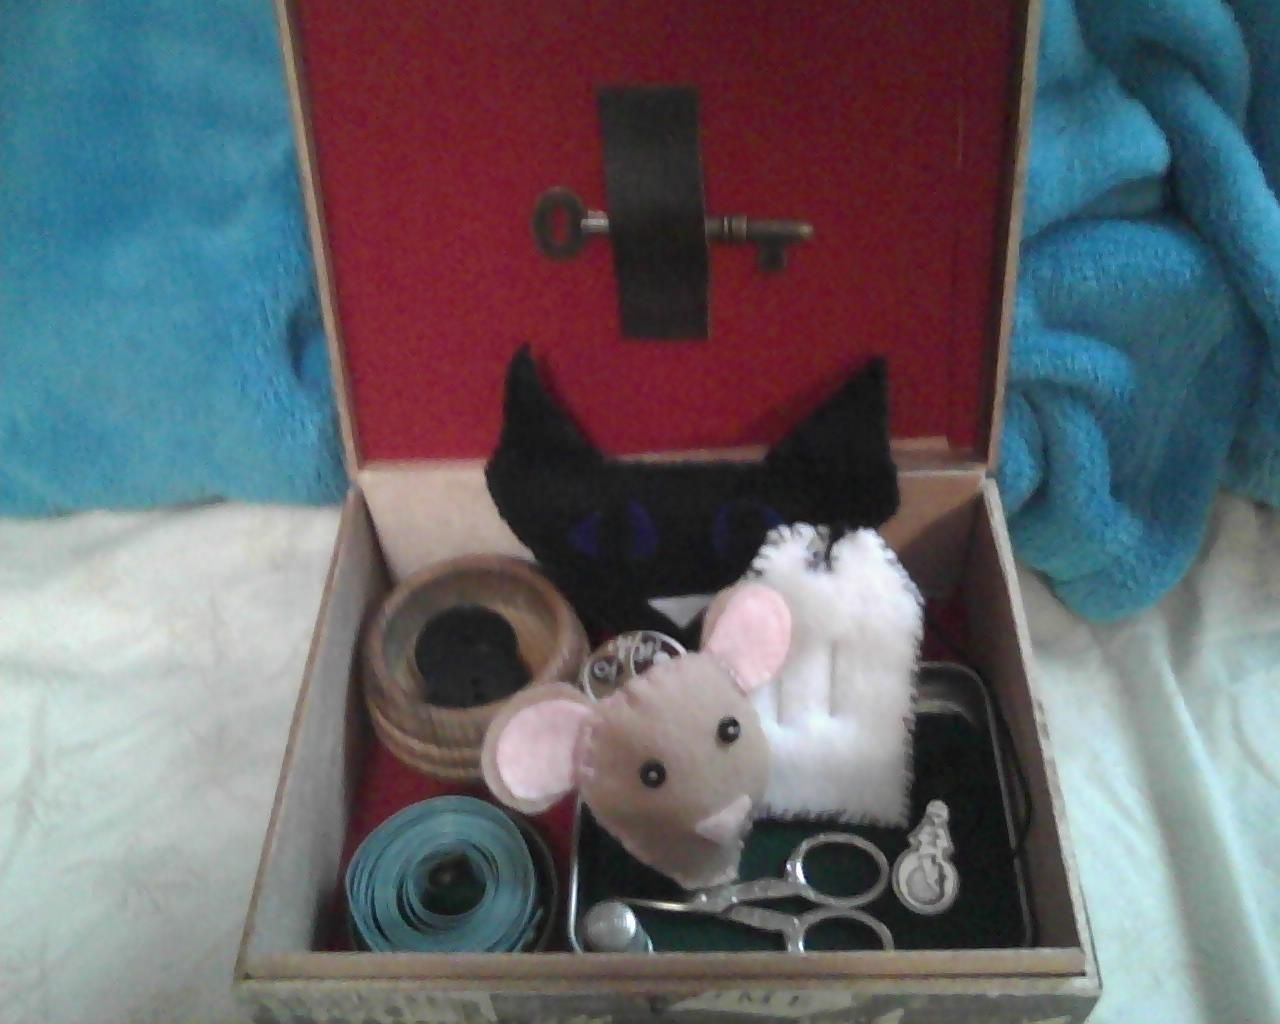 A Sewing Box Based On The Movie Coraline It Comes With A Cat S Head Pincushion Two Black Buttons For Eyes And A Cir Sewing Box Pin Cushions Things To Come